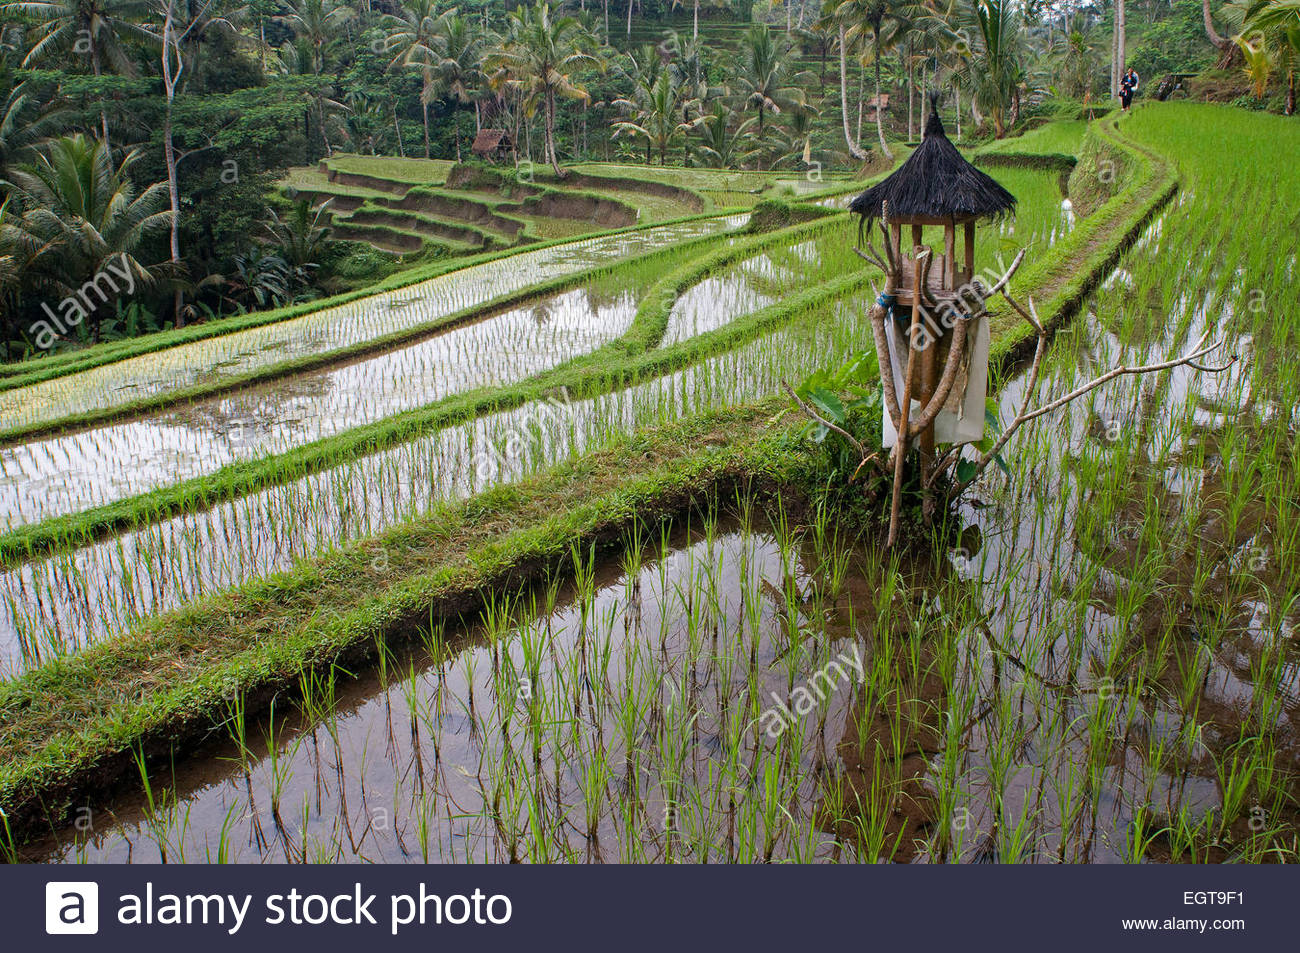 Rice field located around the Kaki Gunung temple in the center of the island near the town of Bangli. Ubud. Bali. - Stock Image